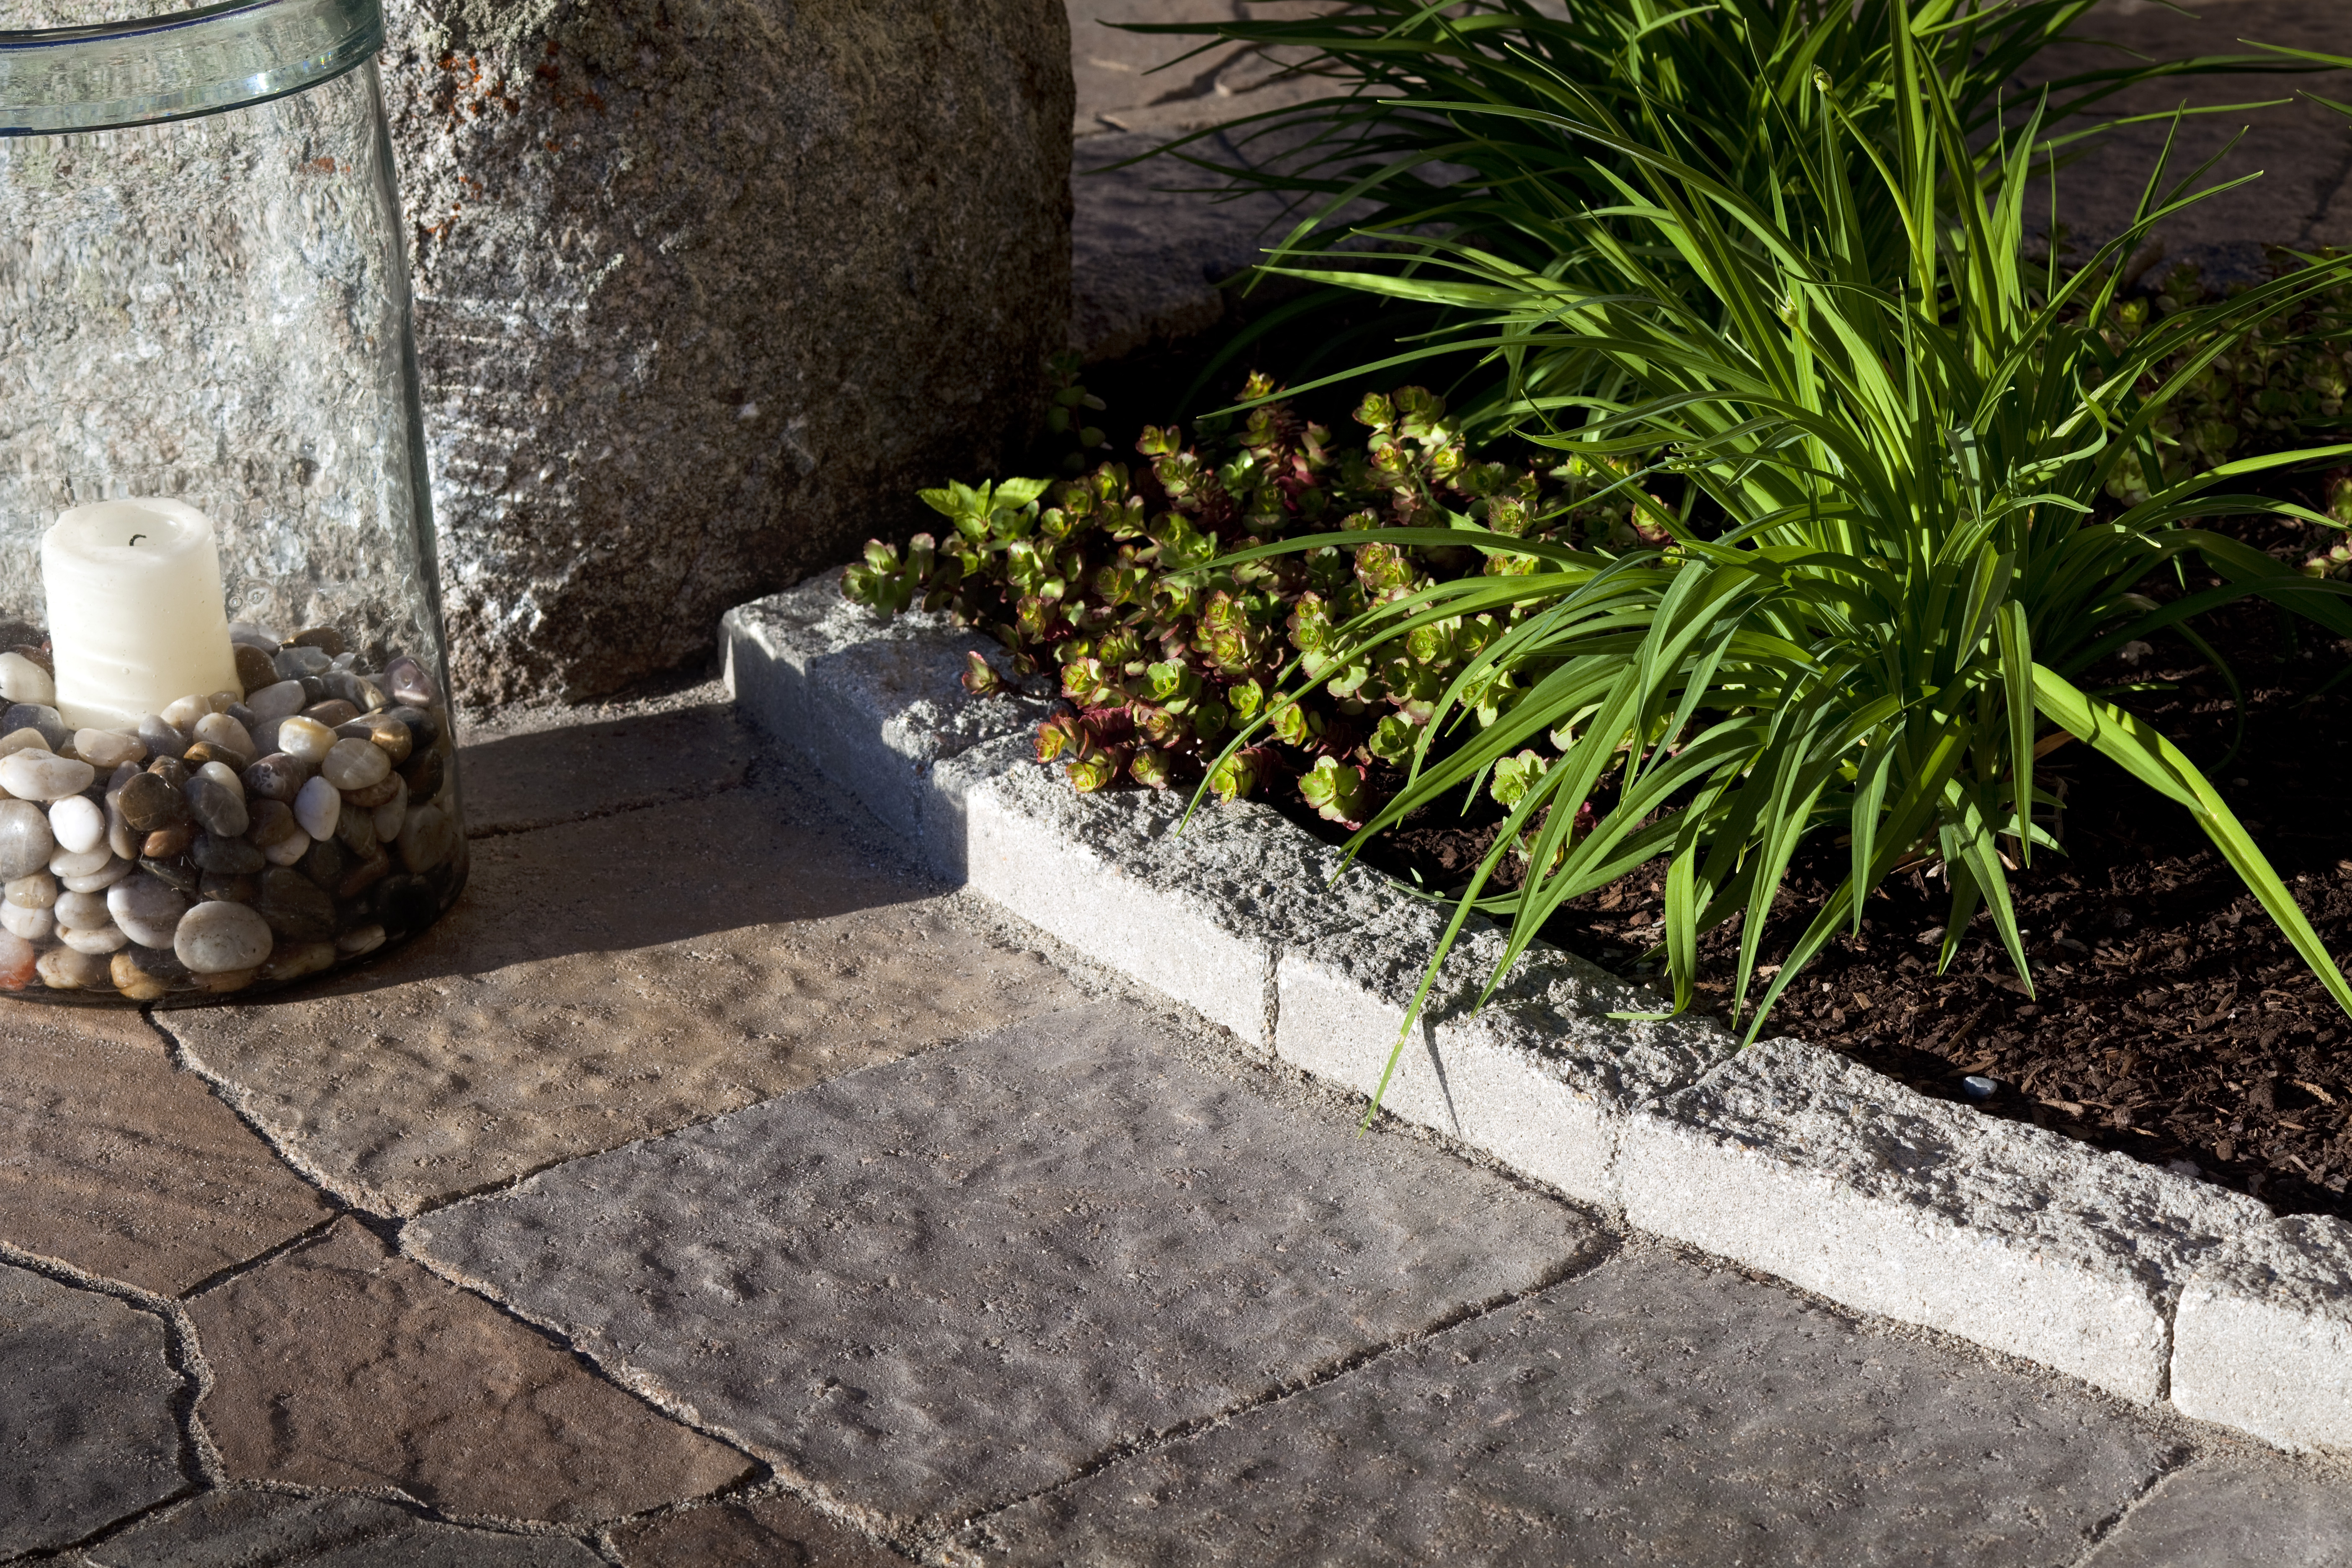 Landscape edging also edging for lawns and flower beds also decorative flower bed edging